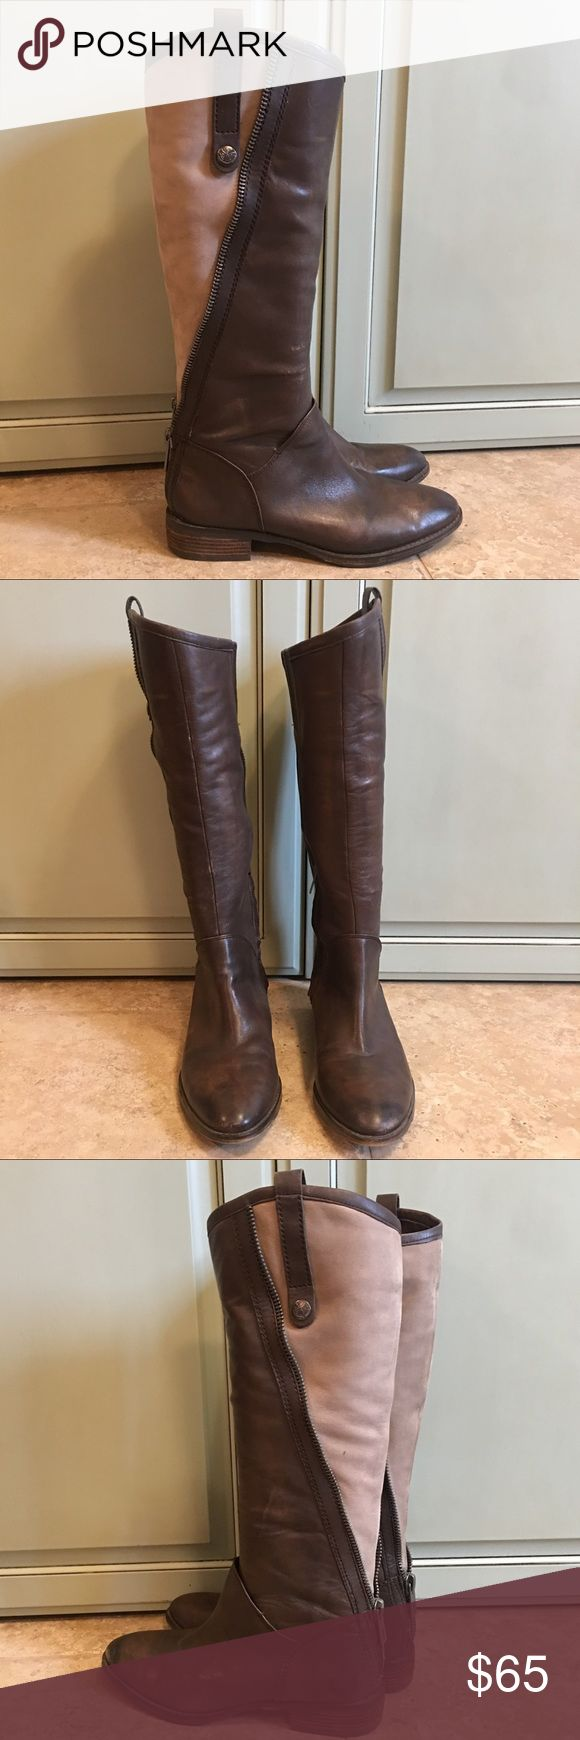 Sam Edelman Shoes Amazing tall mixed media riding boot. I love the fun feel of the mixed fabrics, leather and a suede like material. Fun zipper detail up the back. Silver hard ware. Sam Edelman Shoes Winter & Rain Boots